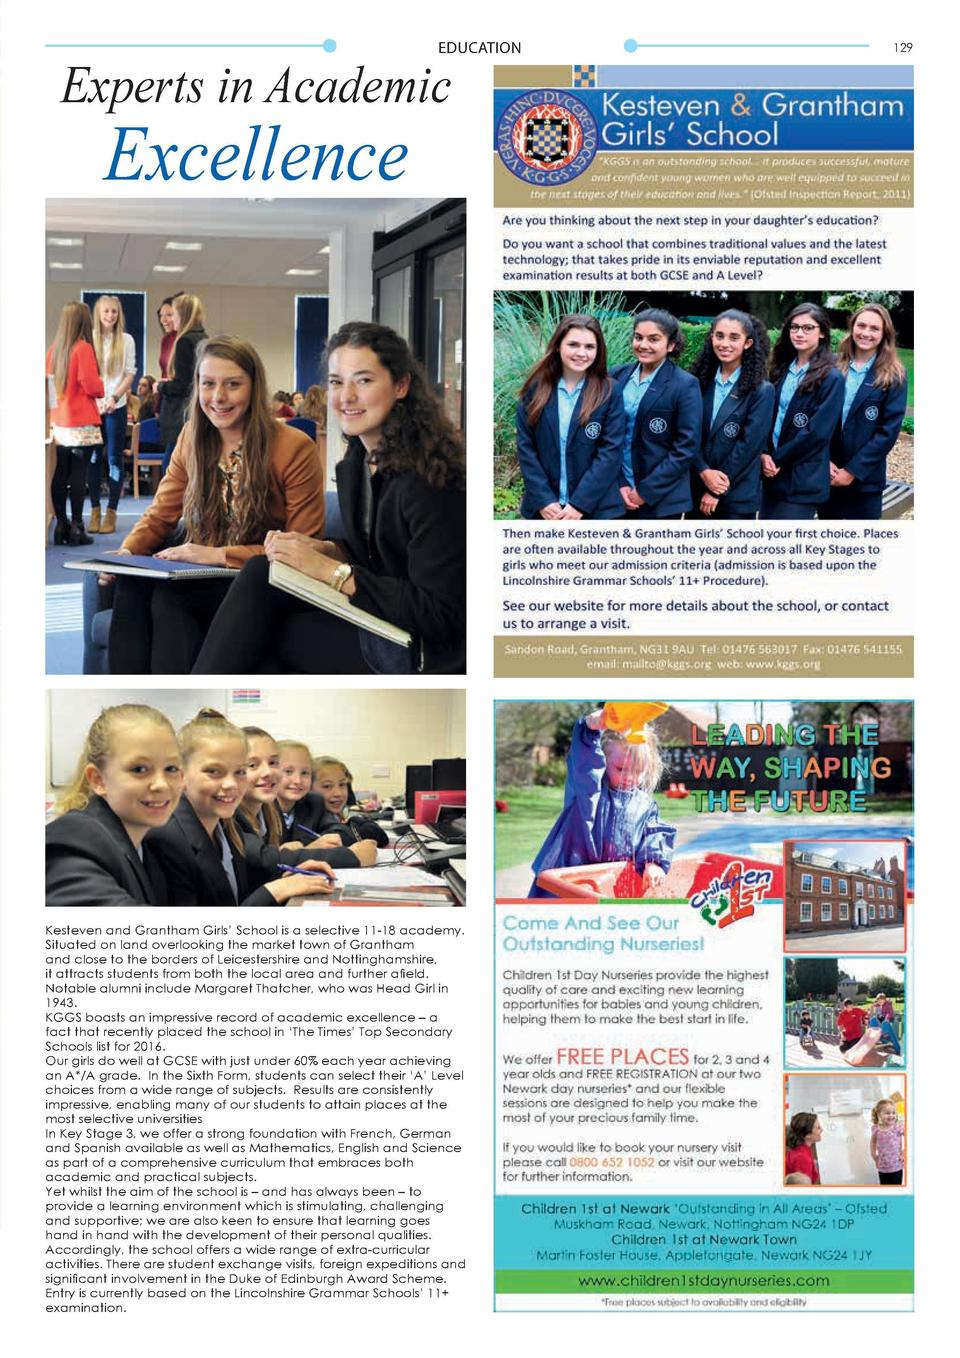 EDUCATION  Experts in Academic  Excellence  Kesteven and Grantham Girls    School is a selective 11-18 academy. Situated o...